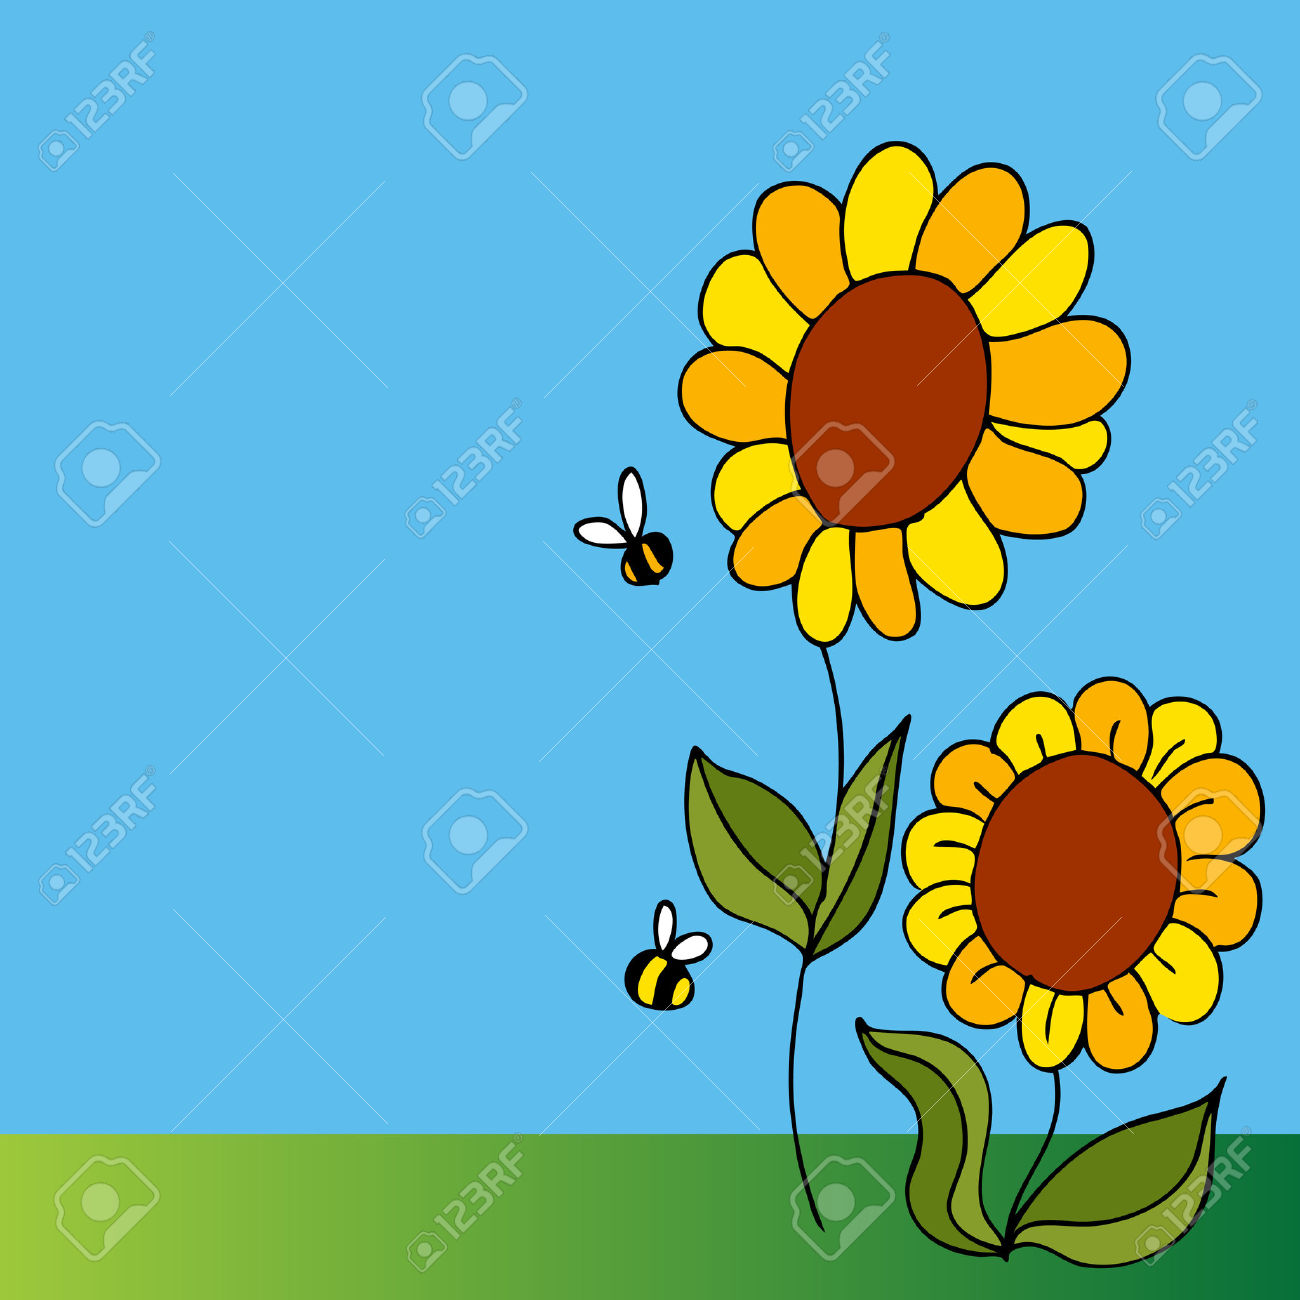 Flowers and bees clipart clip freeuse download An Image Of A Two Sunflowers And Two Bees. Royalty Free Cliparts ... clip freeuse download